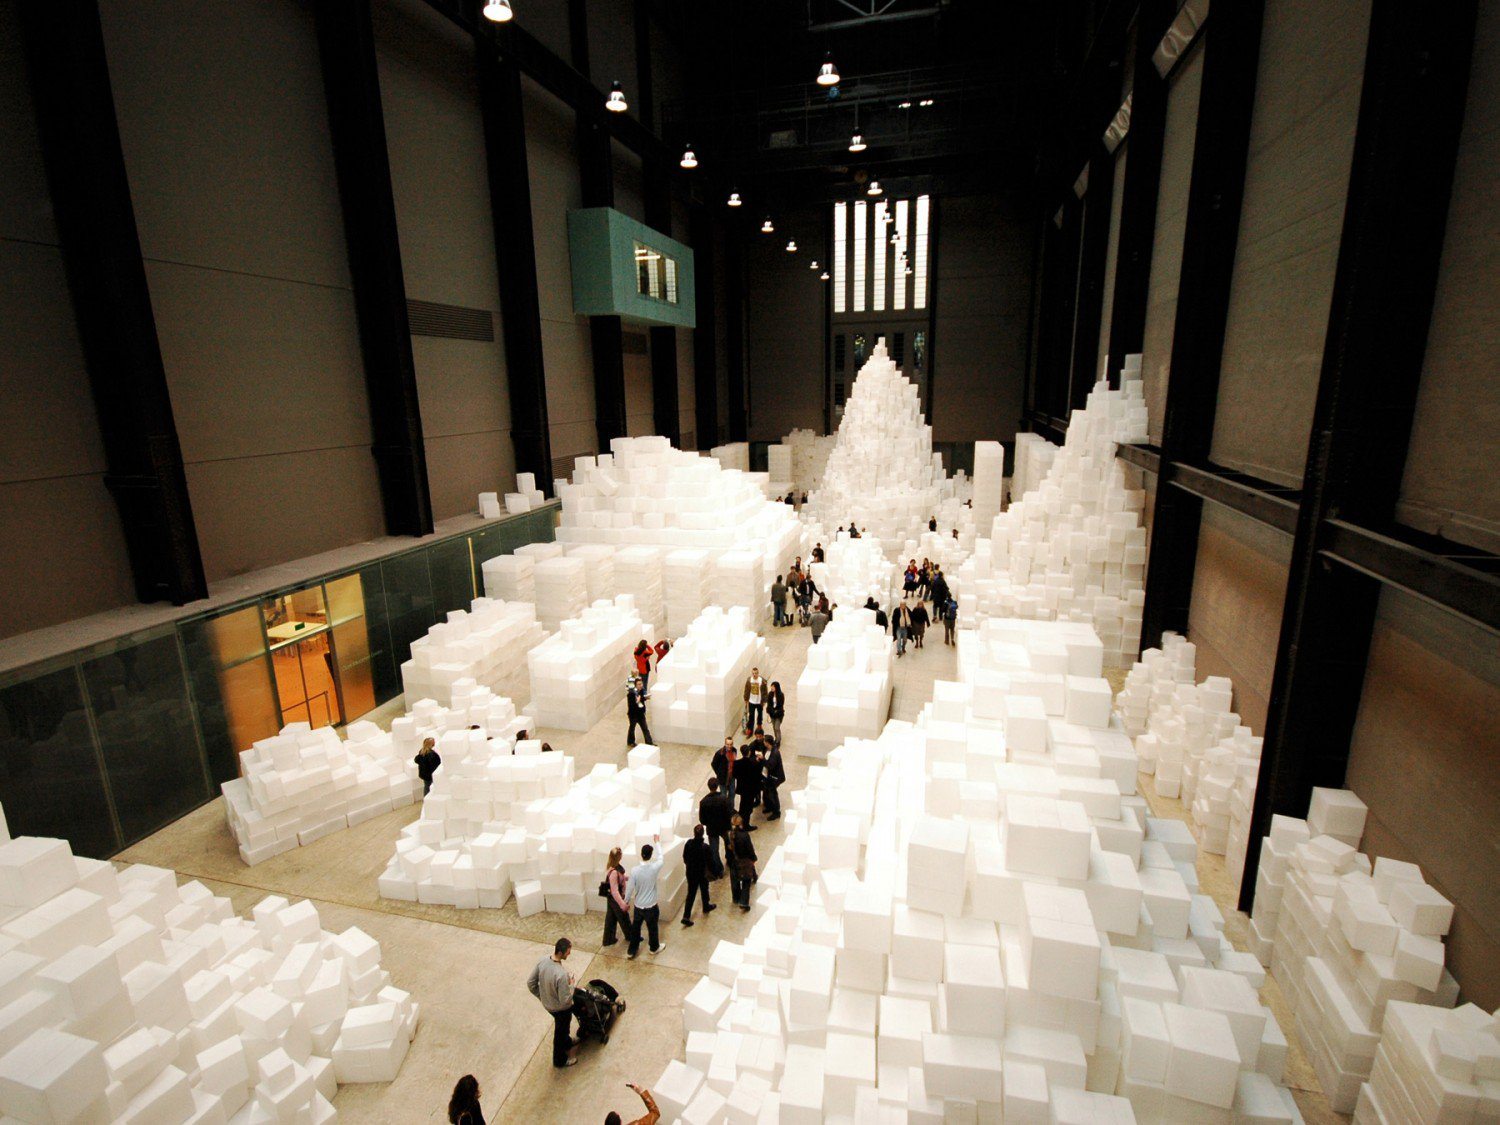 Rachel Whiteread at the Tate Modern in 2006.